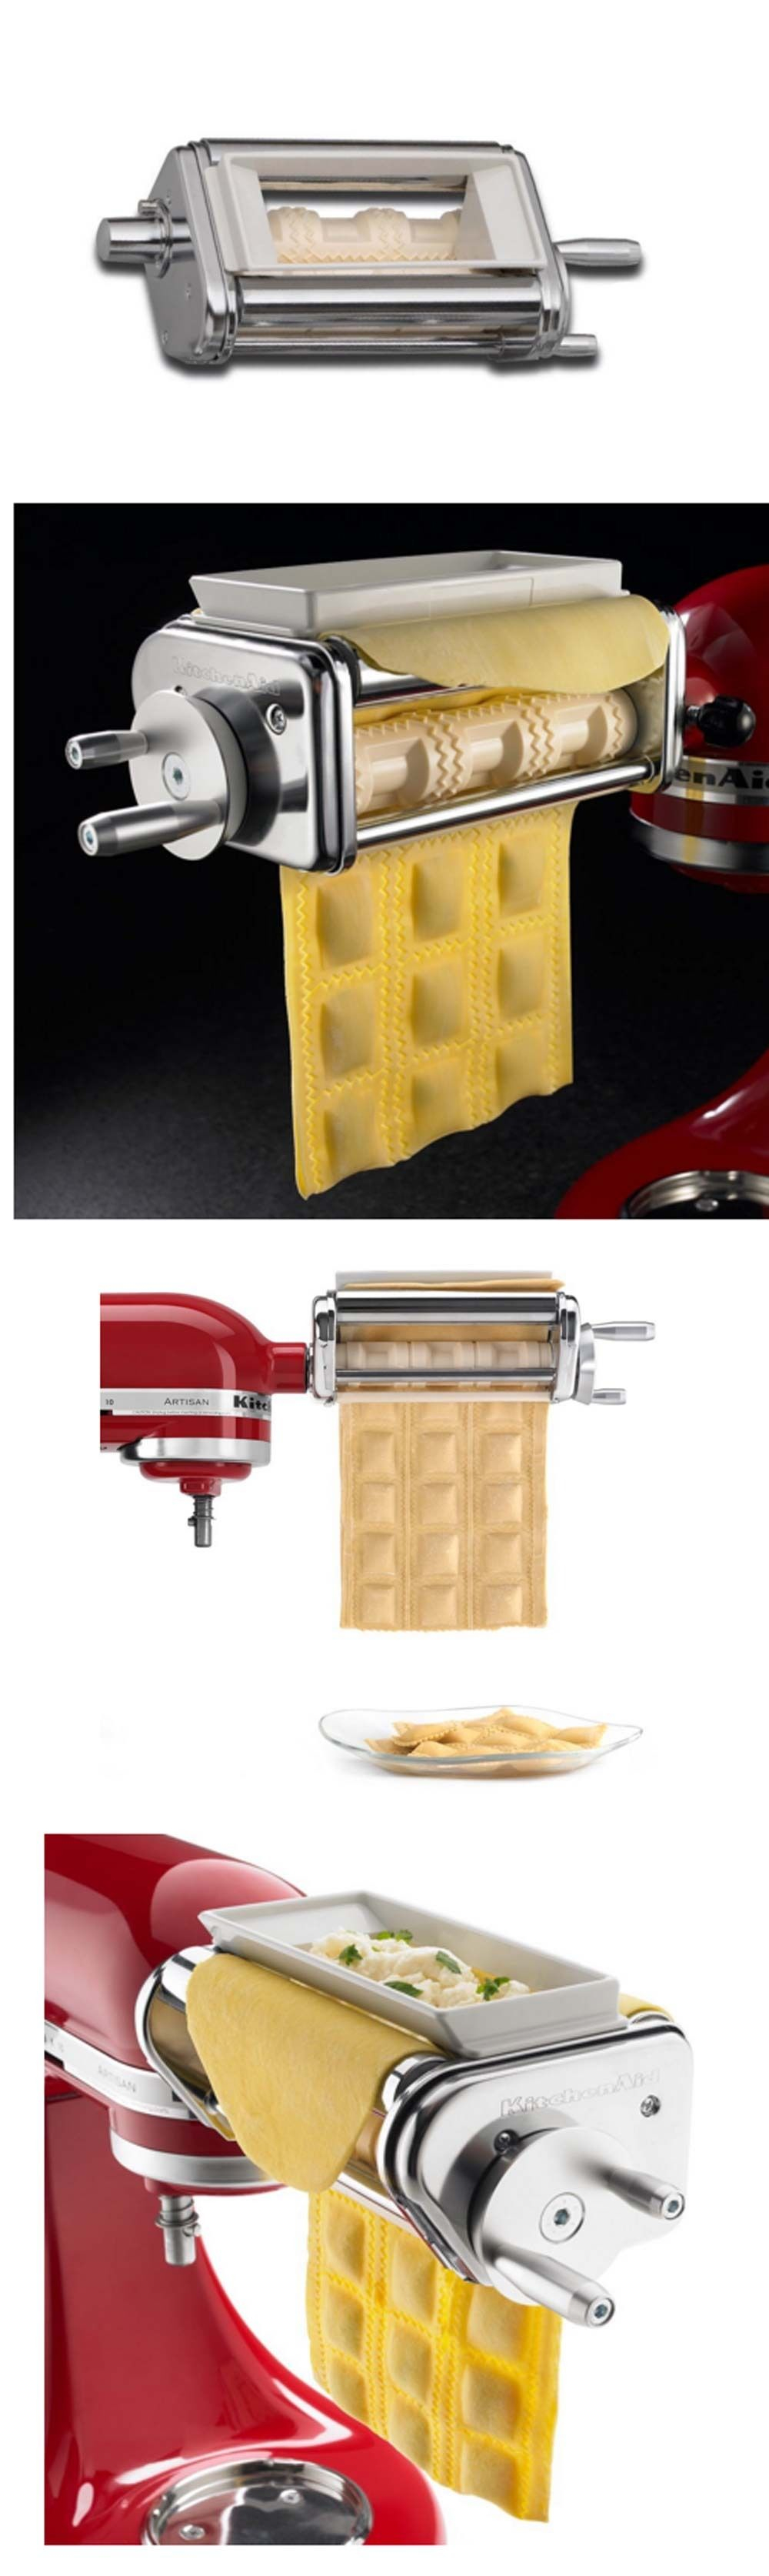 Pasta Molds and Presses 178058: Ravioli Maker With 6 Rollers ...